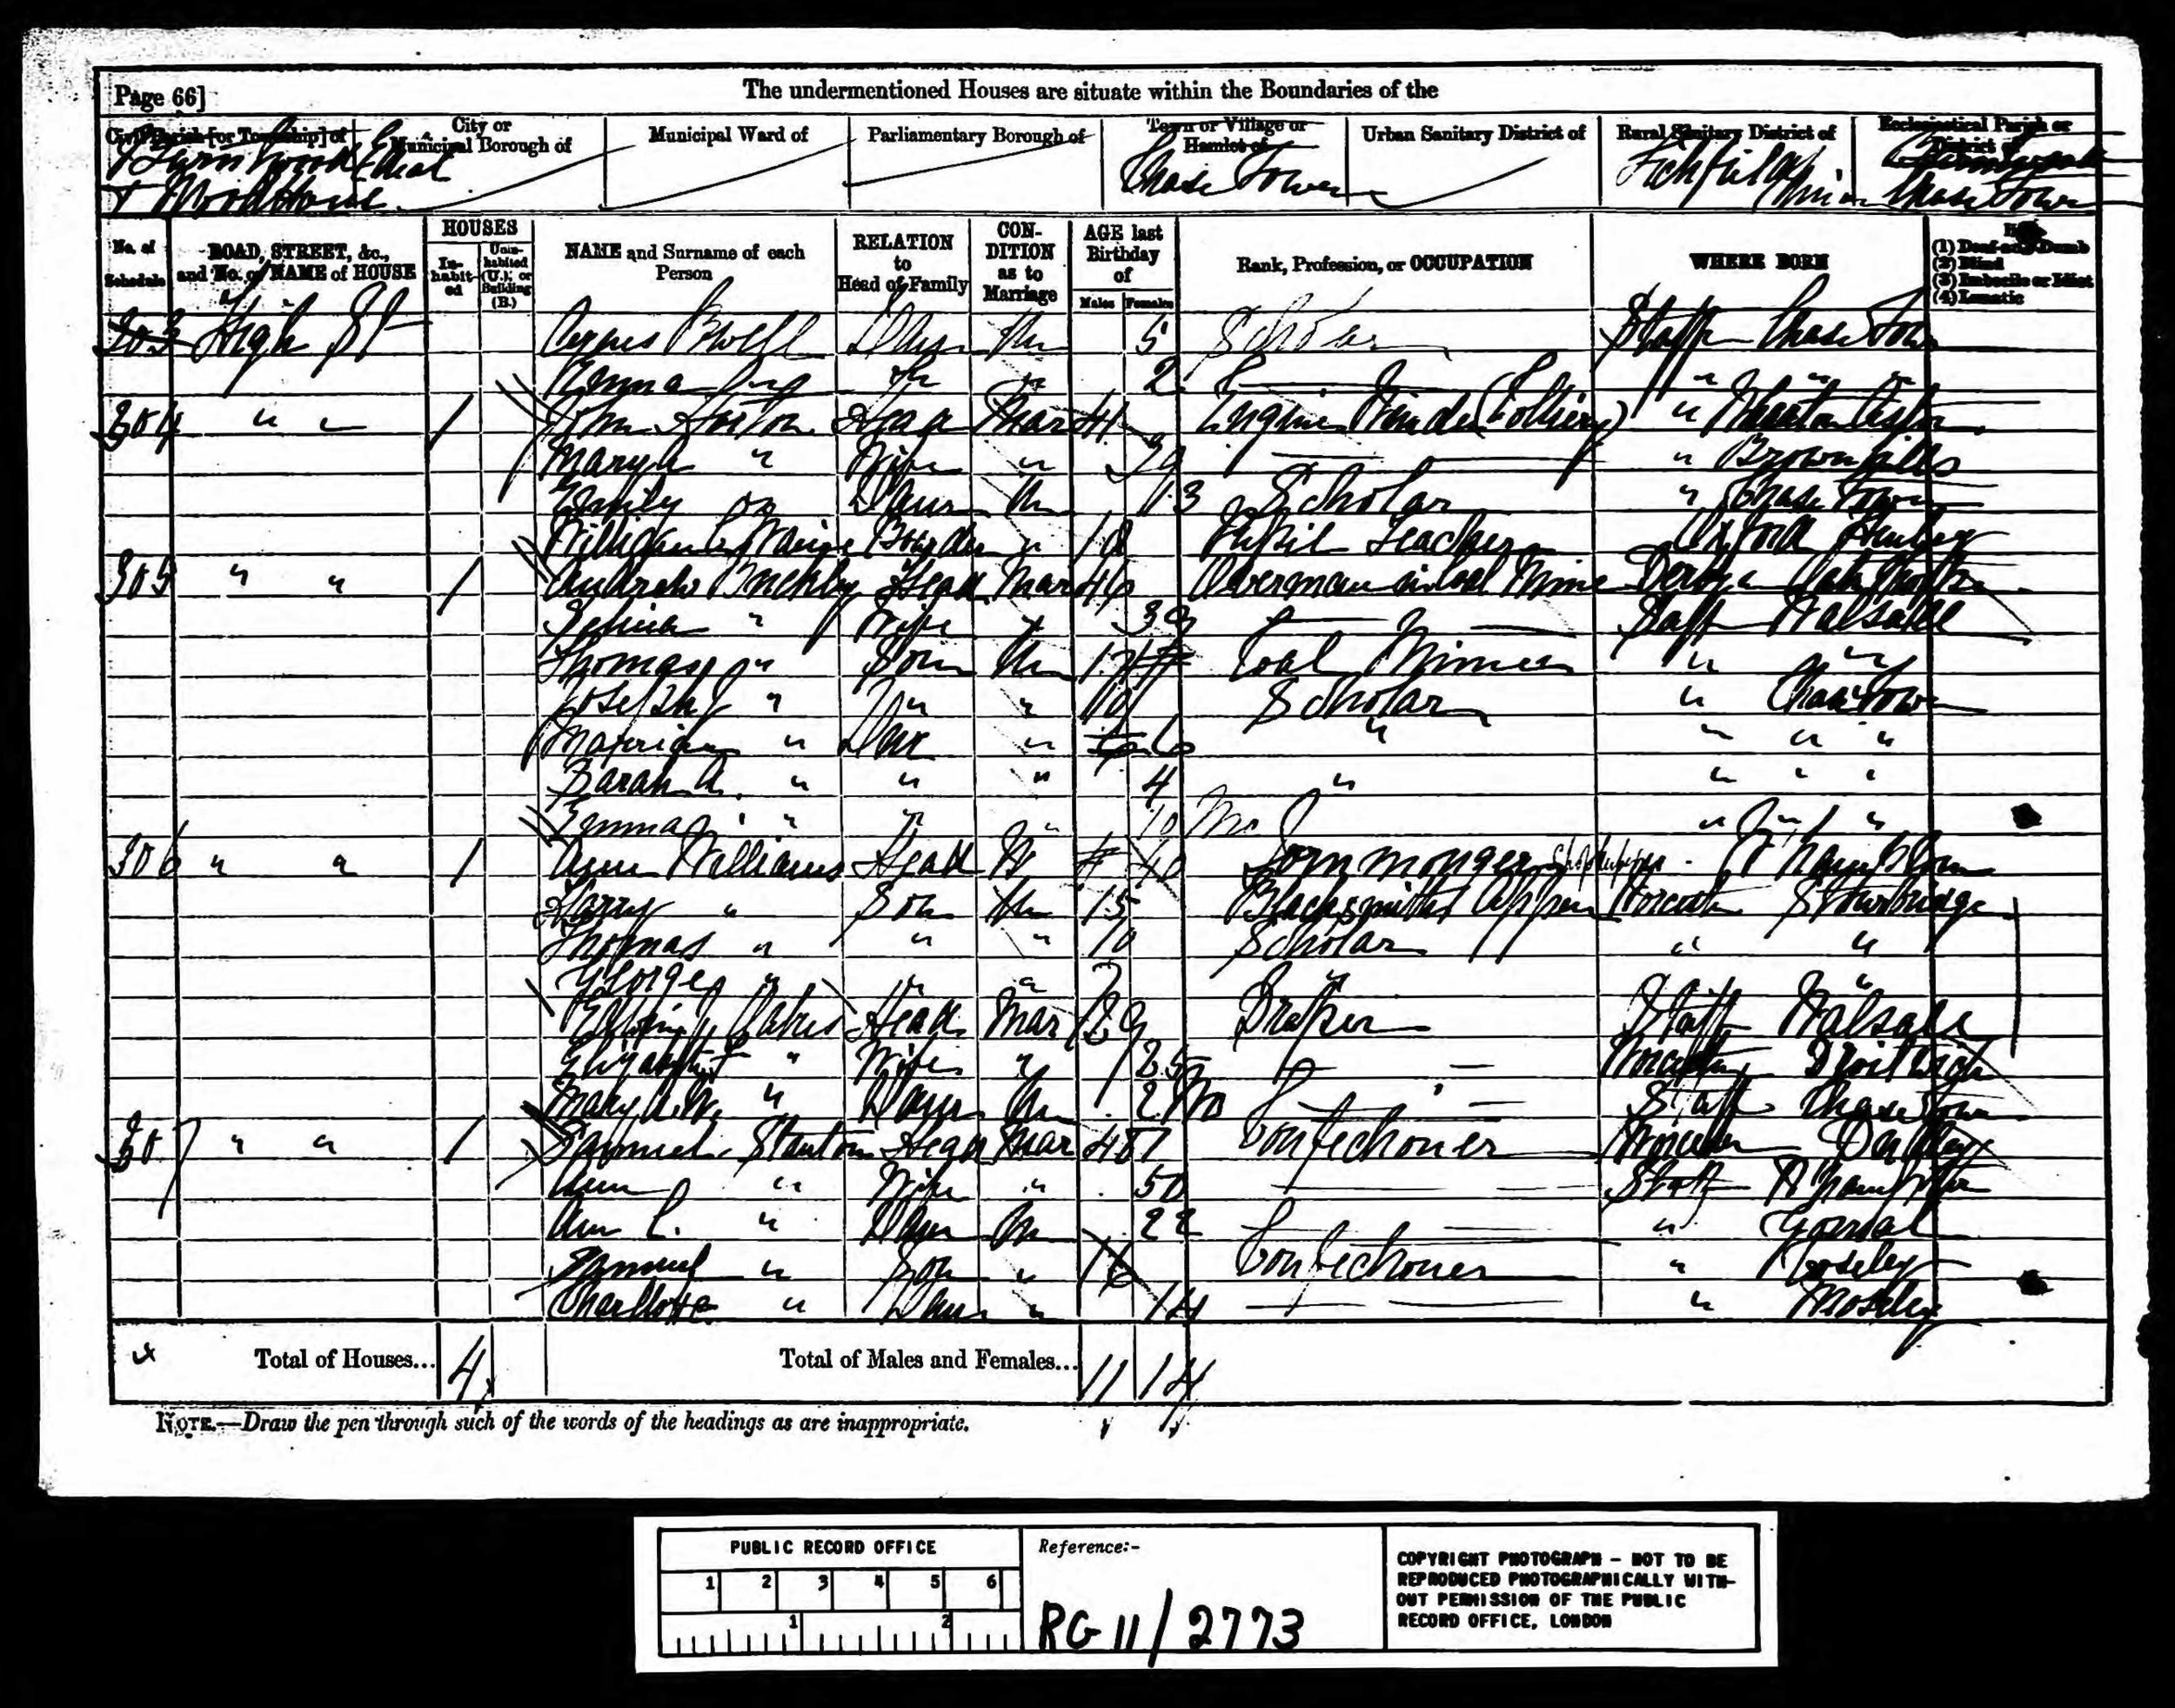 1881 census entry for John and Jane CALLIER